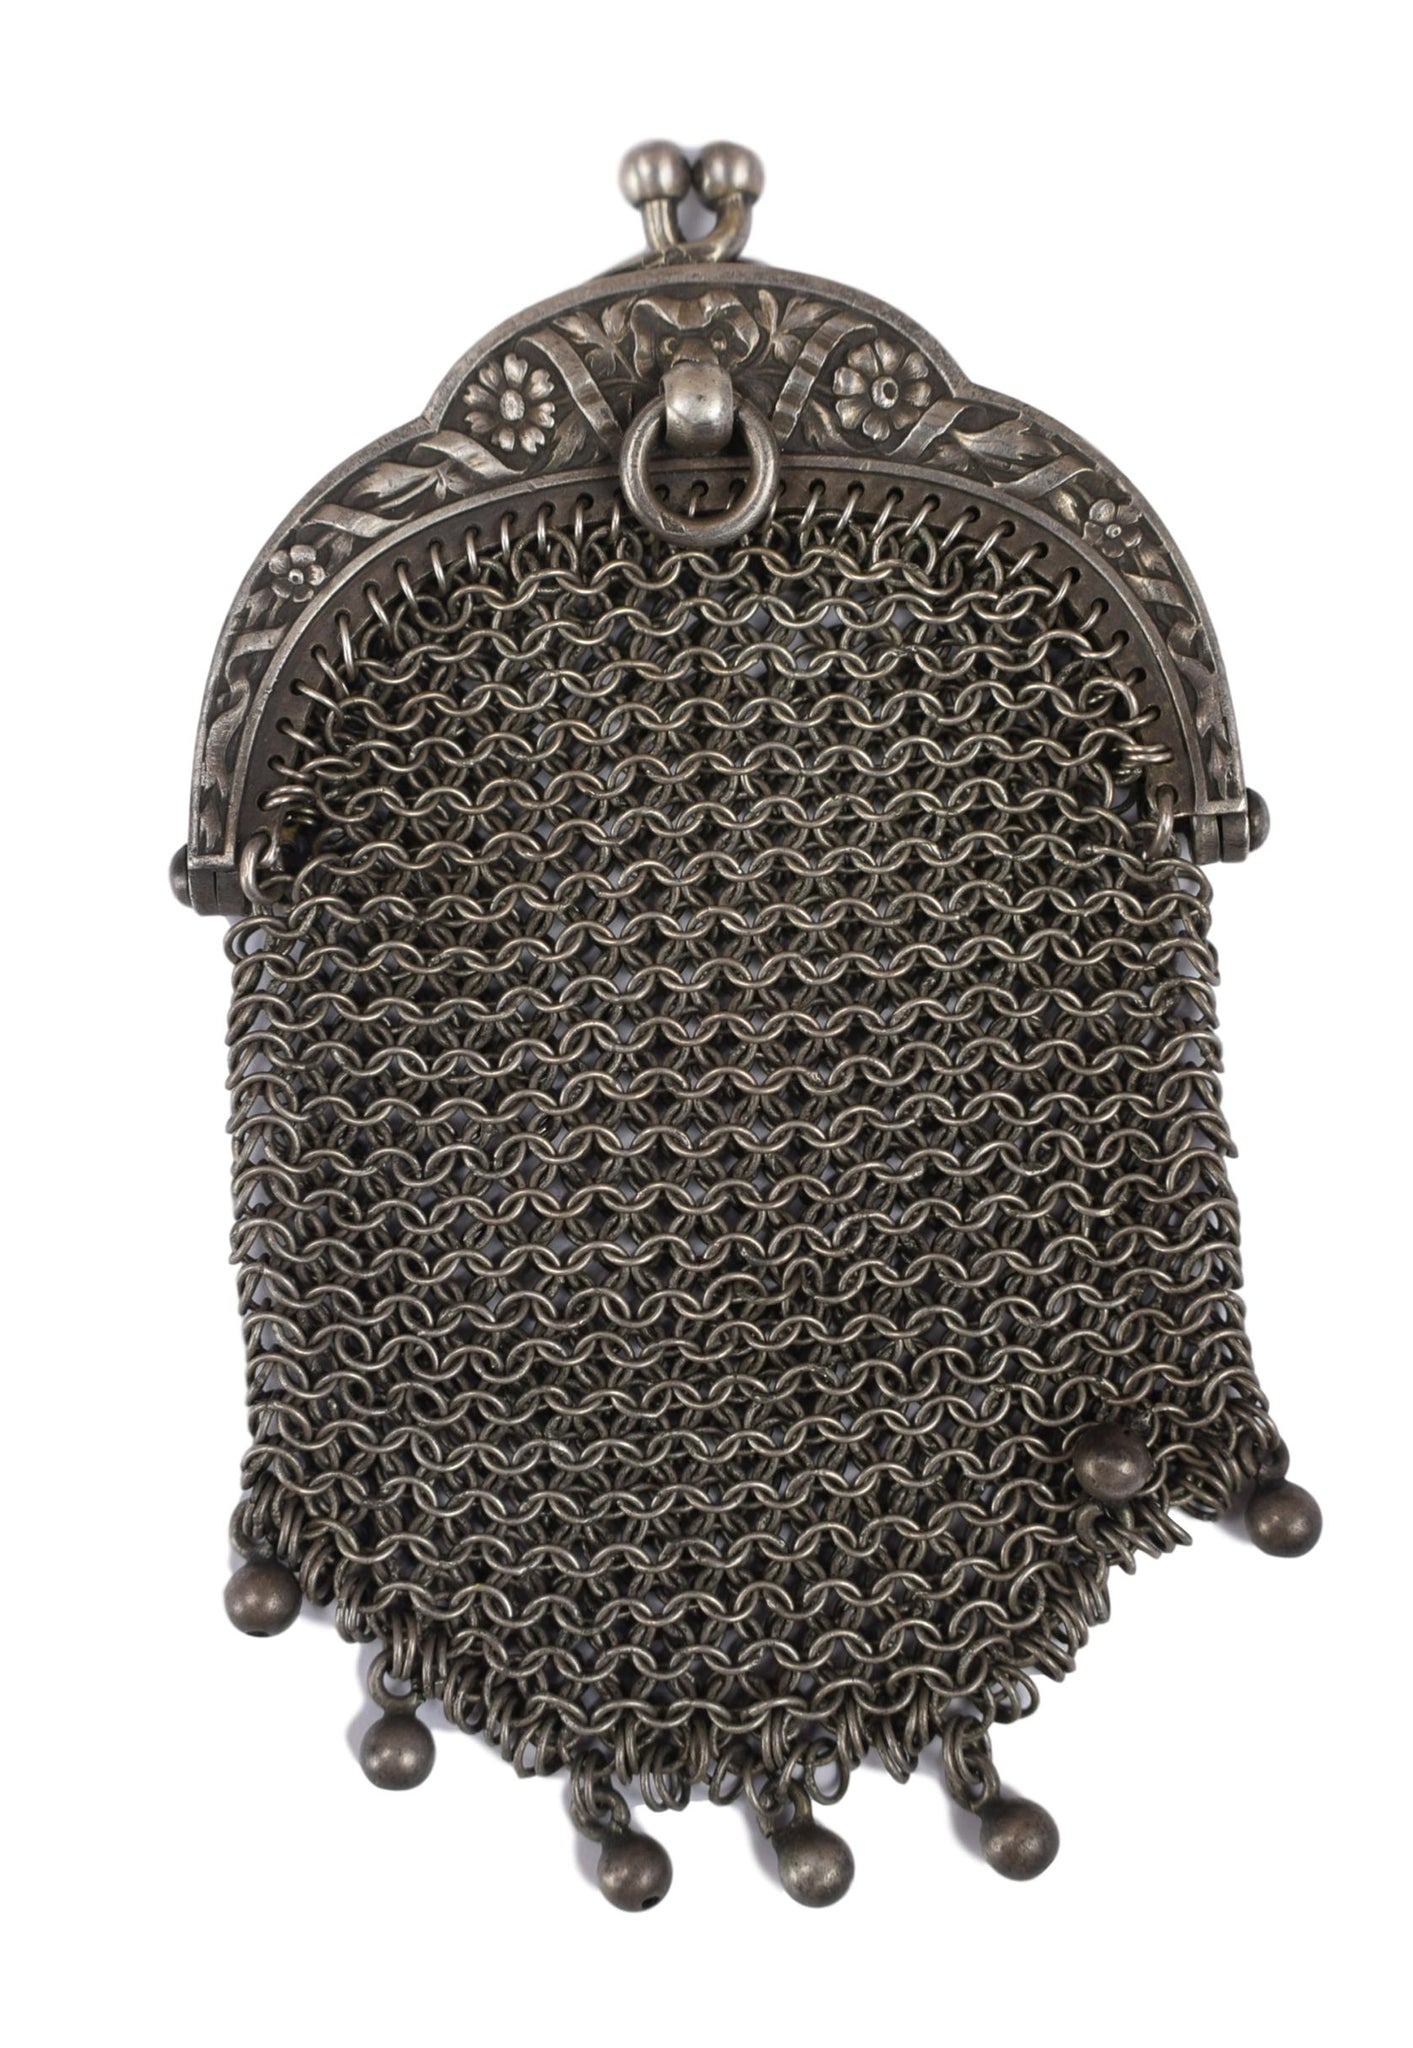 Mesh Chatelaine Silver Coin Purse - Charmantiques